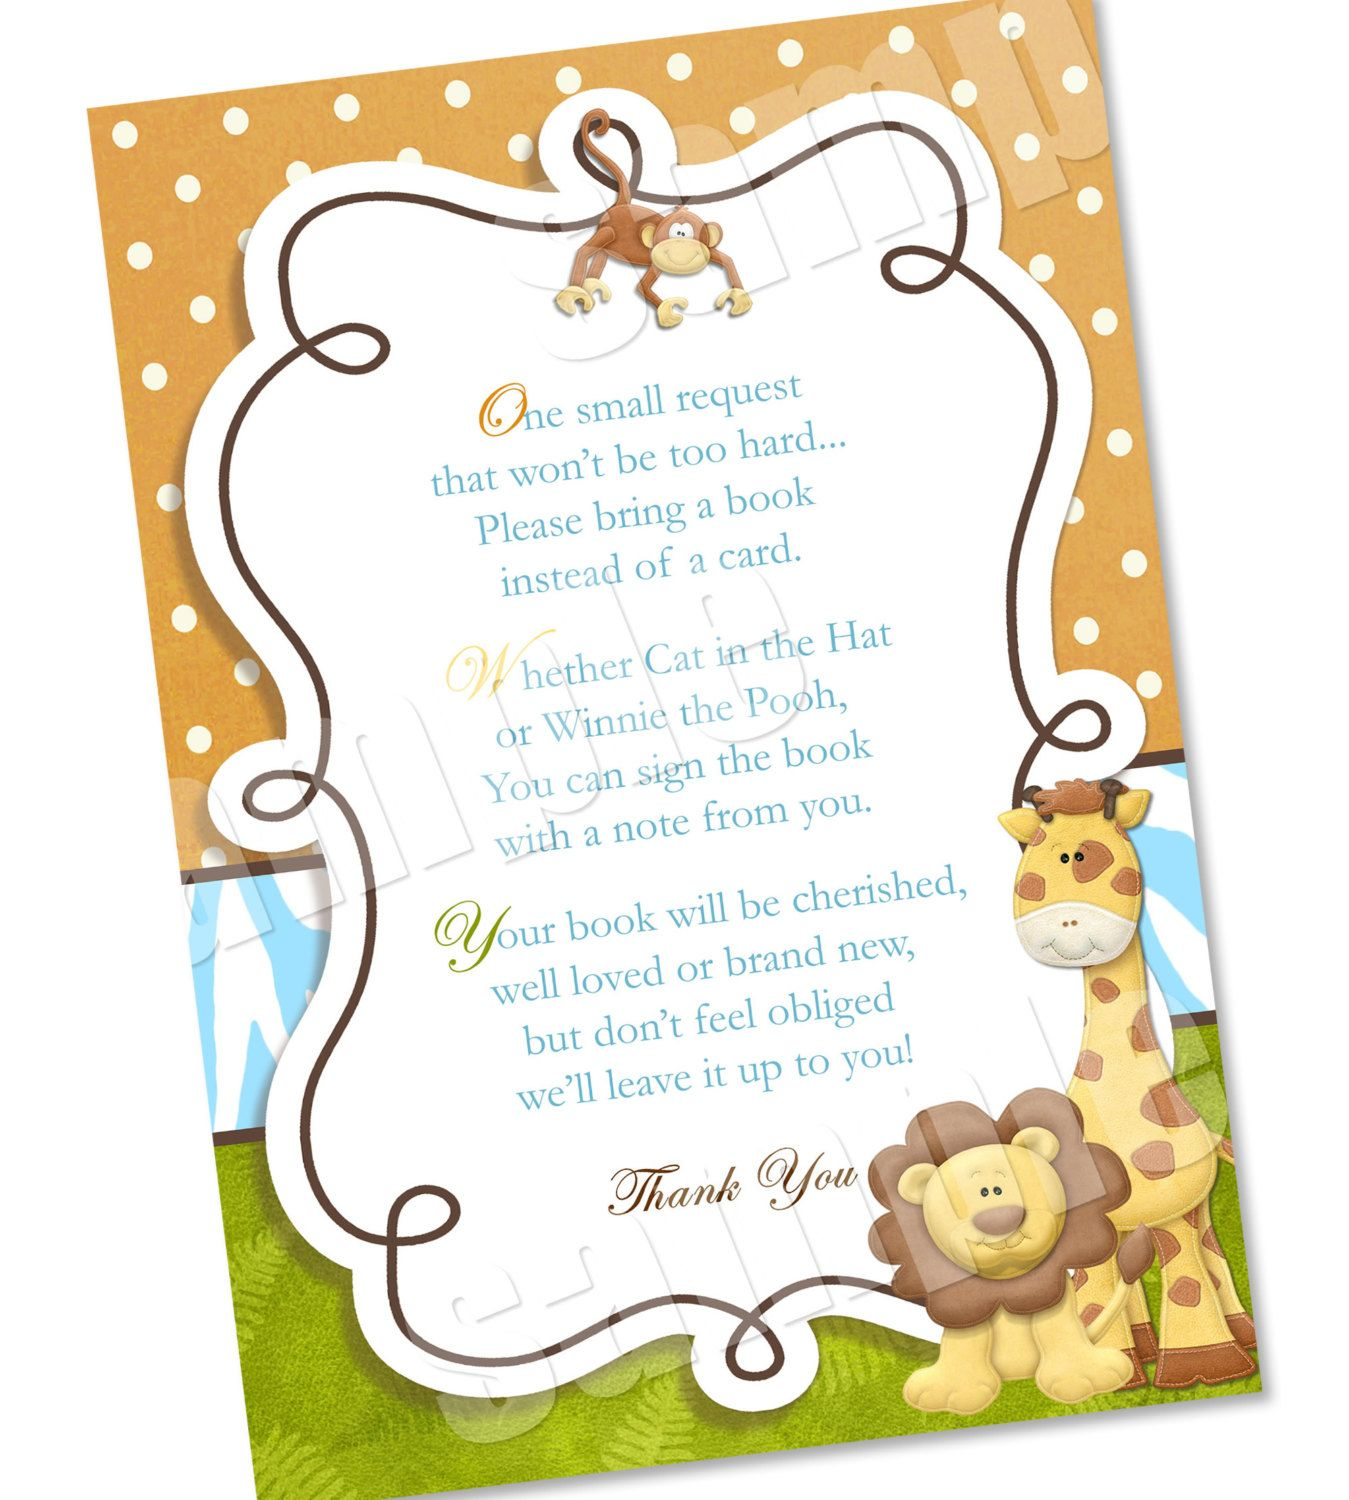 Wording To Ask For Baby Books Instead Of The Card Please Bring A Book Jungle Shower Invitation